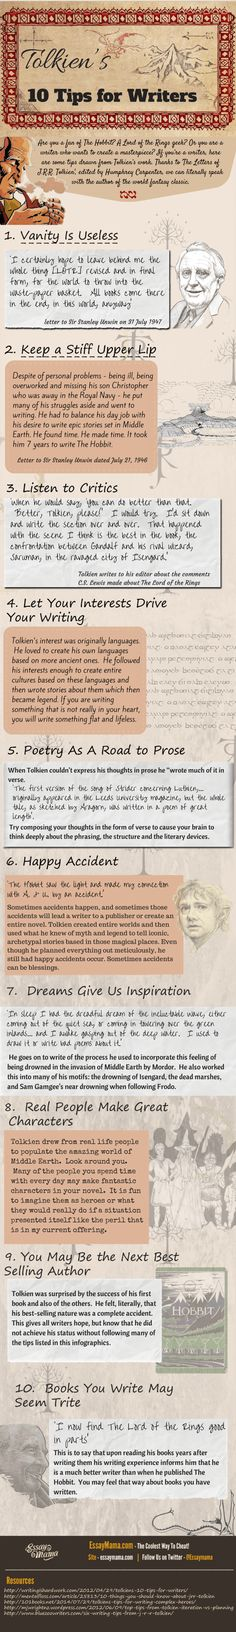 Tolkien s Writing Tips (Infographic) J. Tolkien s 10 Tips for WritersJ. Tolkien s 10 Tips for Writers Writing Quotes, Writing Advice, Writing Help, Writing Skills, Writing A Book, Writing Ideas, Writing Fantasy, Fantasy Fiction, Fiction Writing